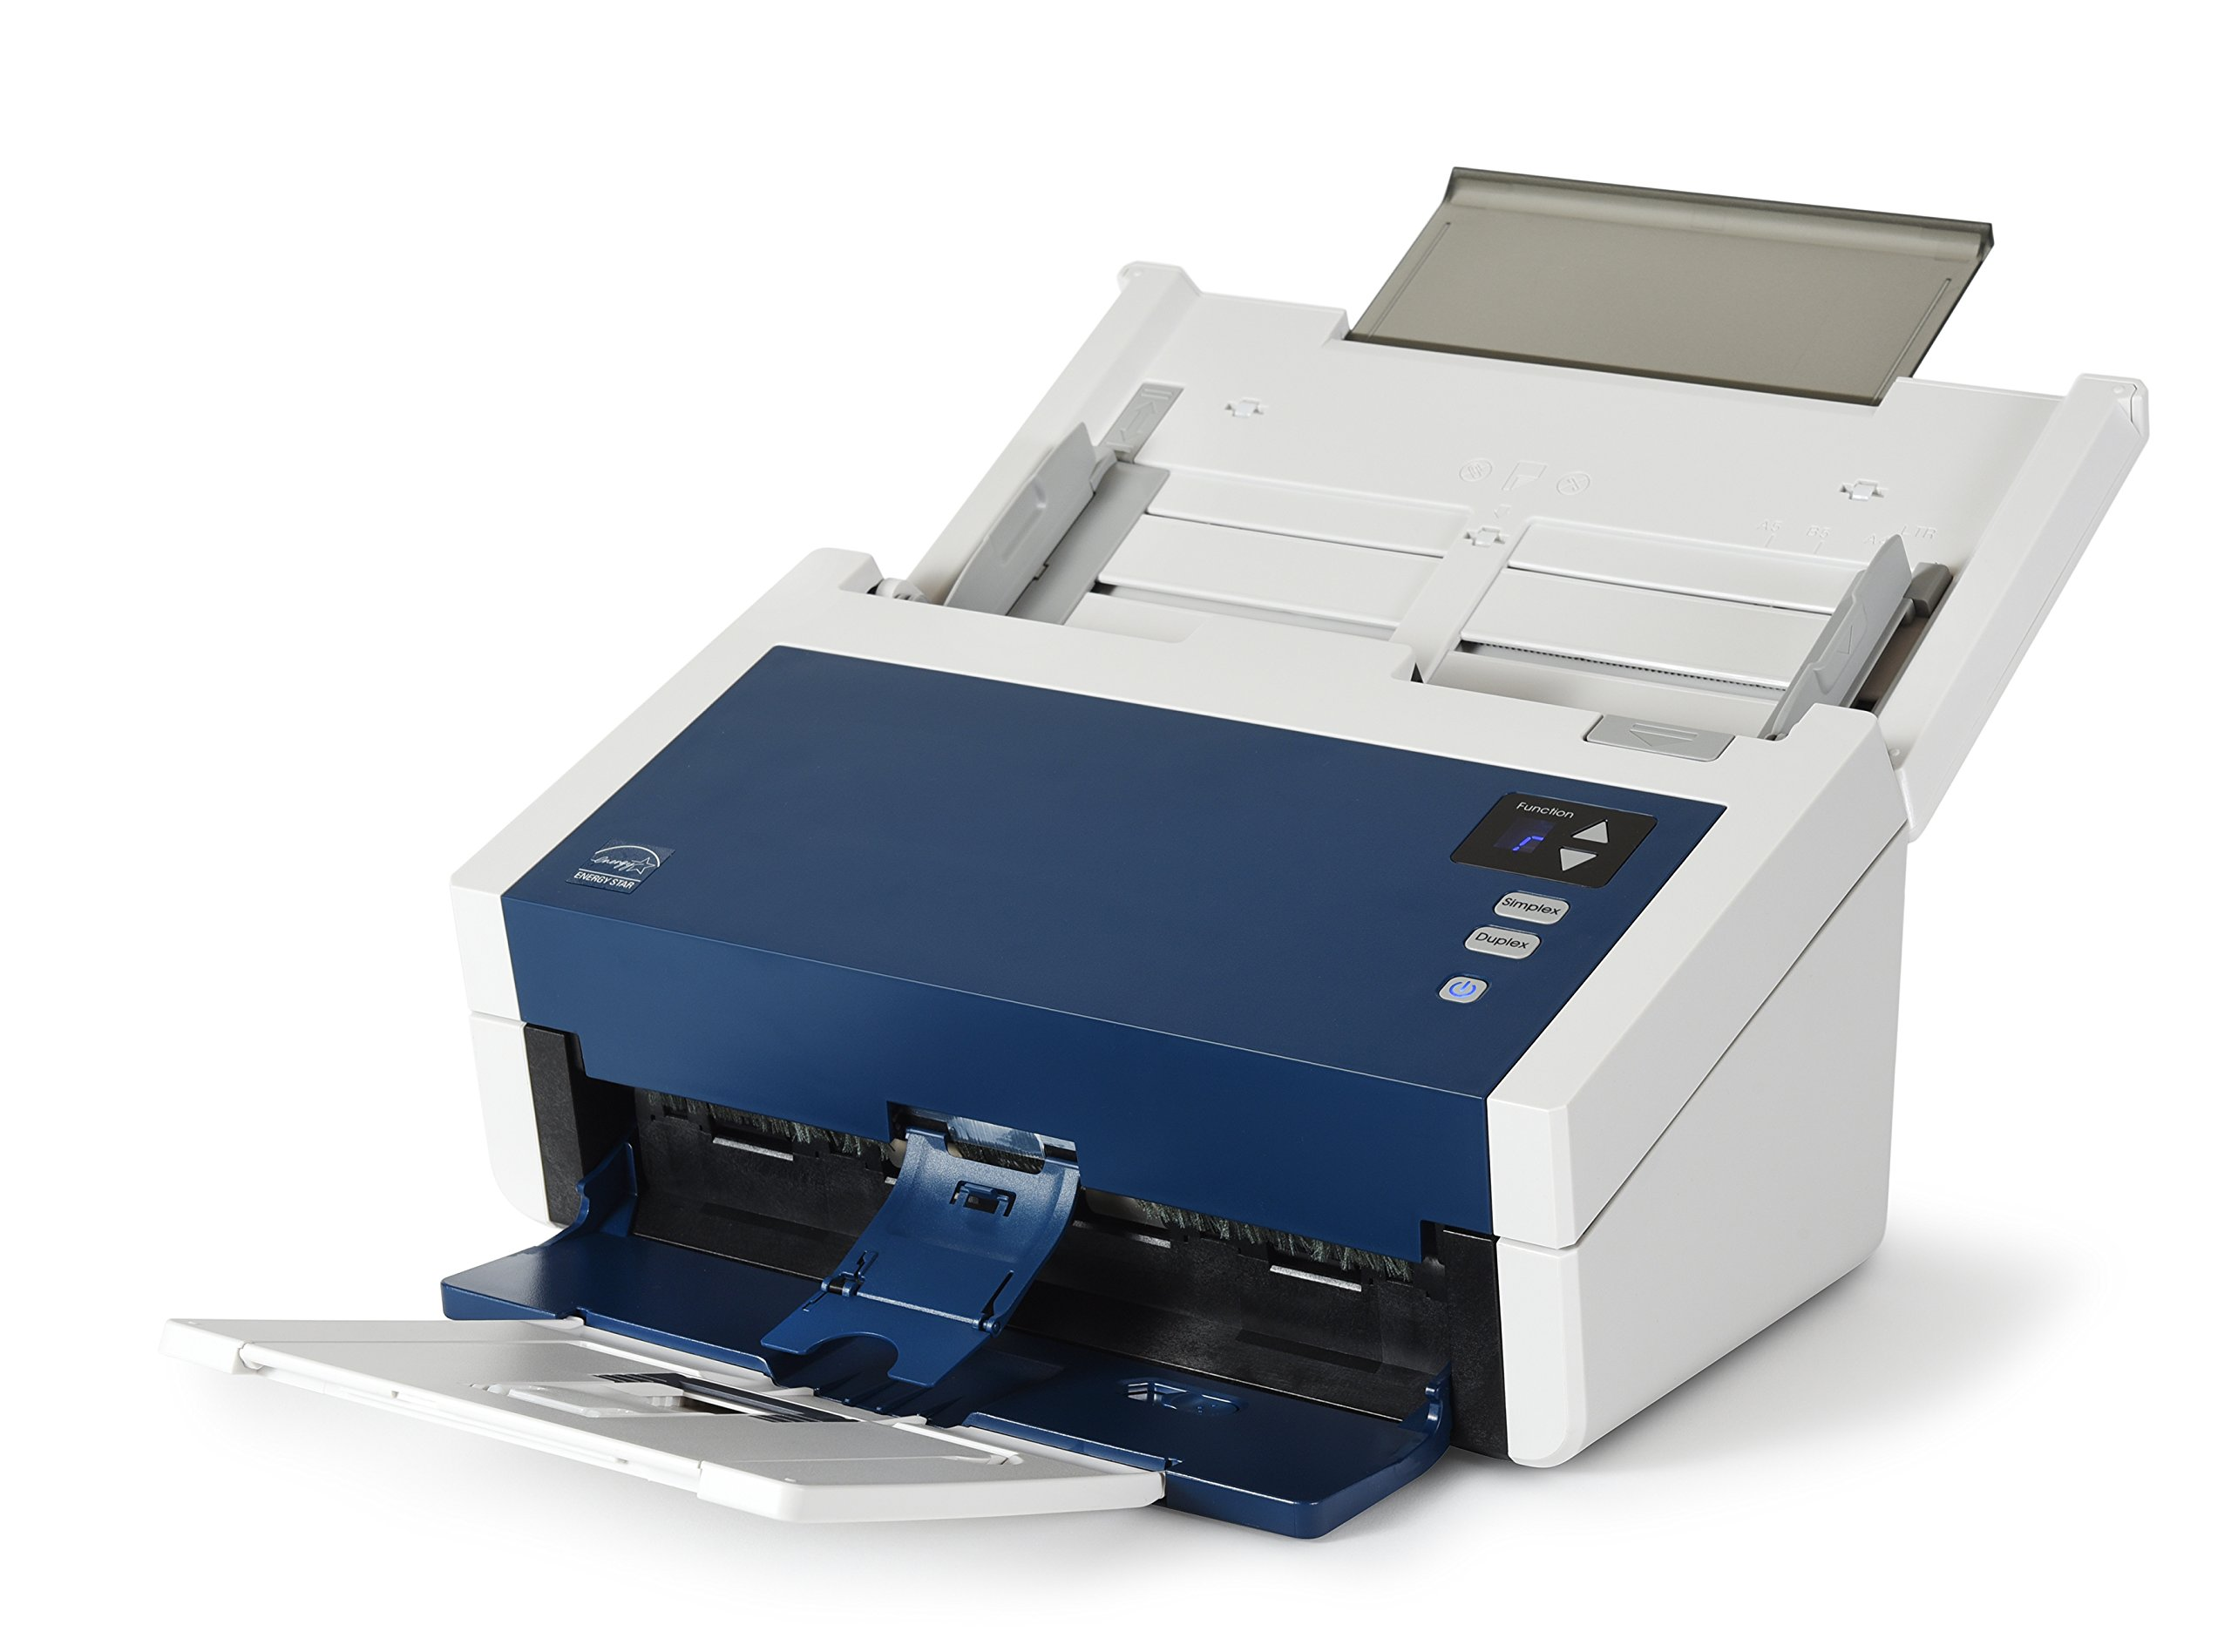 Xerox XDM6440-U DOCUMATE 6440 60 PPM DUPLEX COLOR ADF SCANNER by Xerox